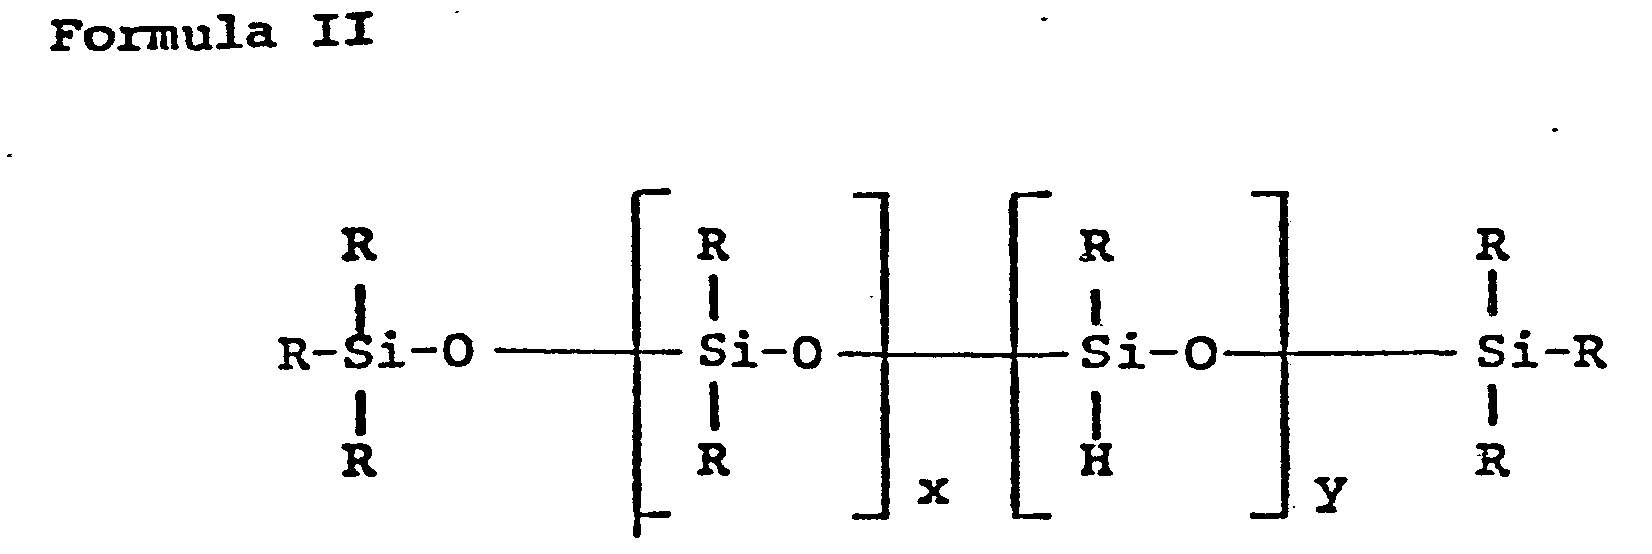 EP0158140A2 - Olefin polymer compositions containing silicone